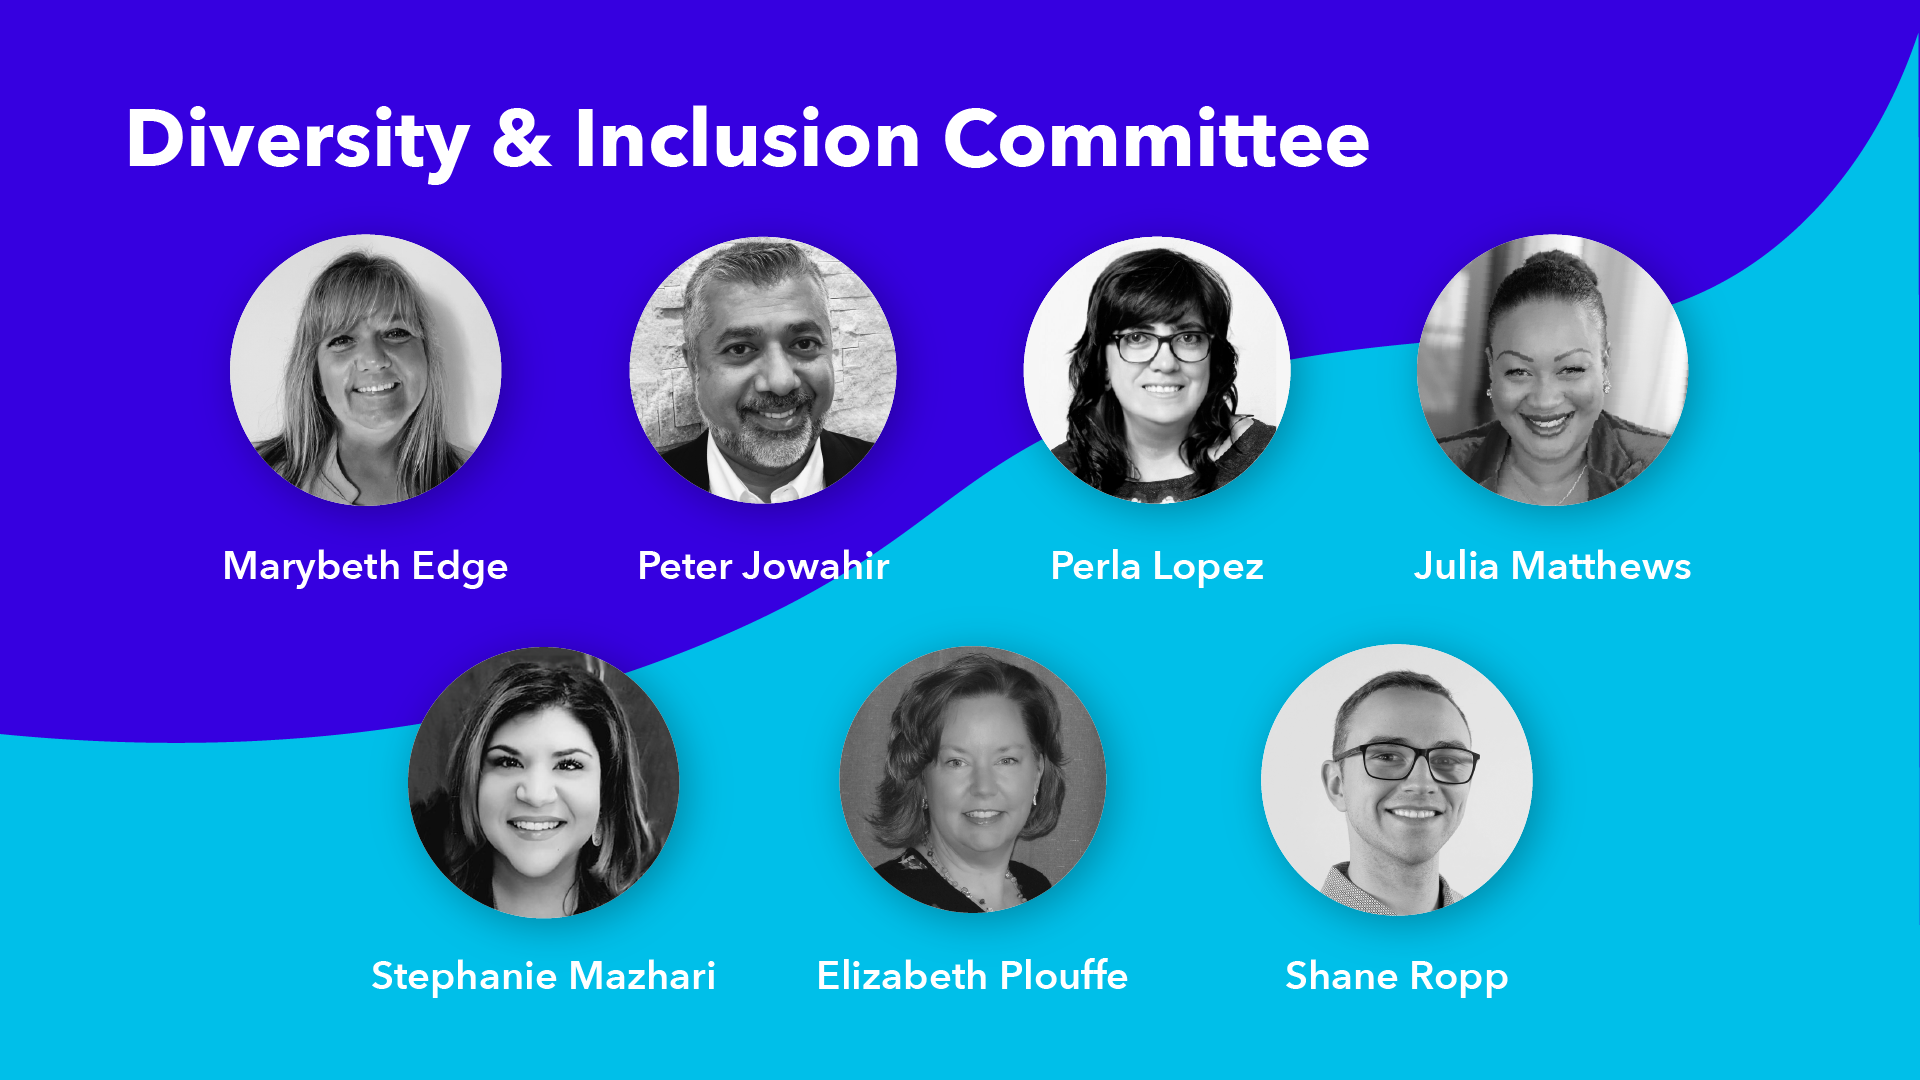 Image showing members of Haltech's Diversity & Inclusion Committee